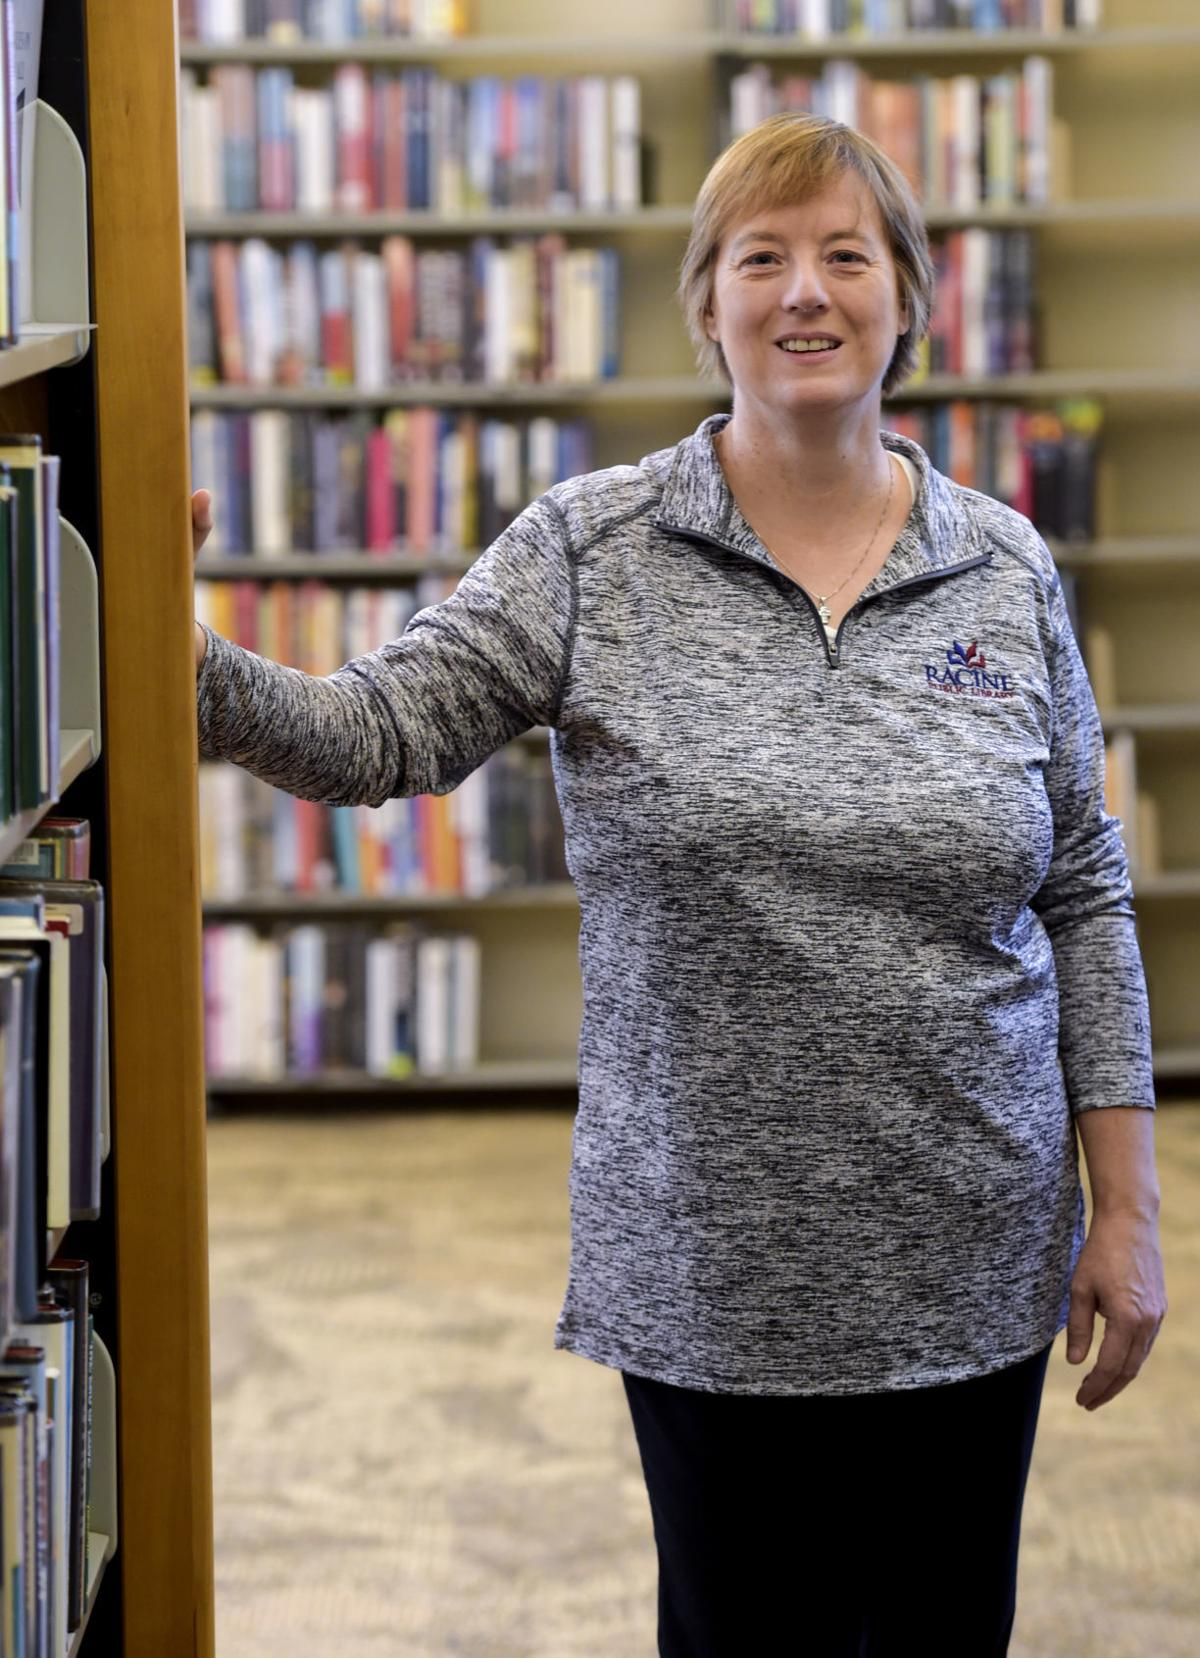 Librarian Darcy Mohr is the head of adult and youth services at the Racine Public Library.